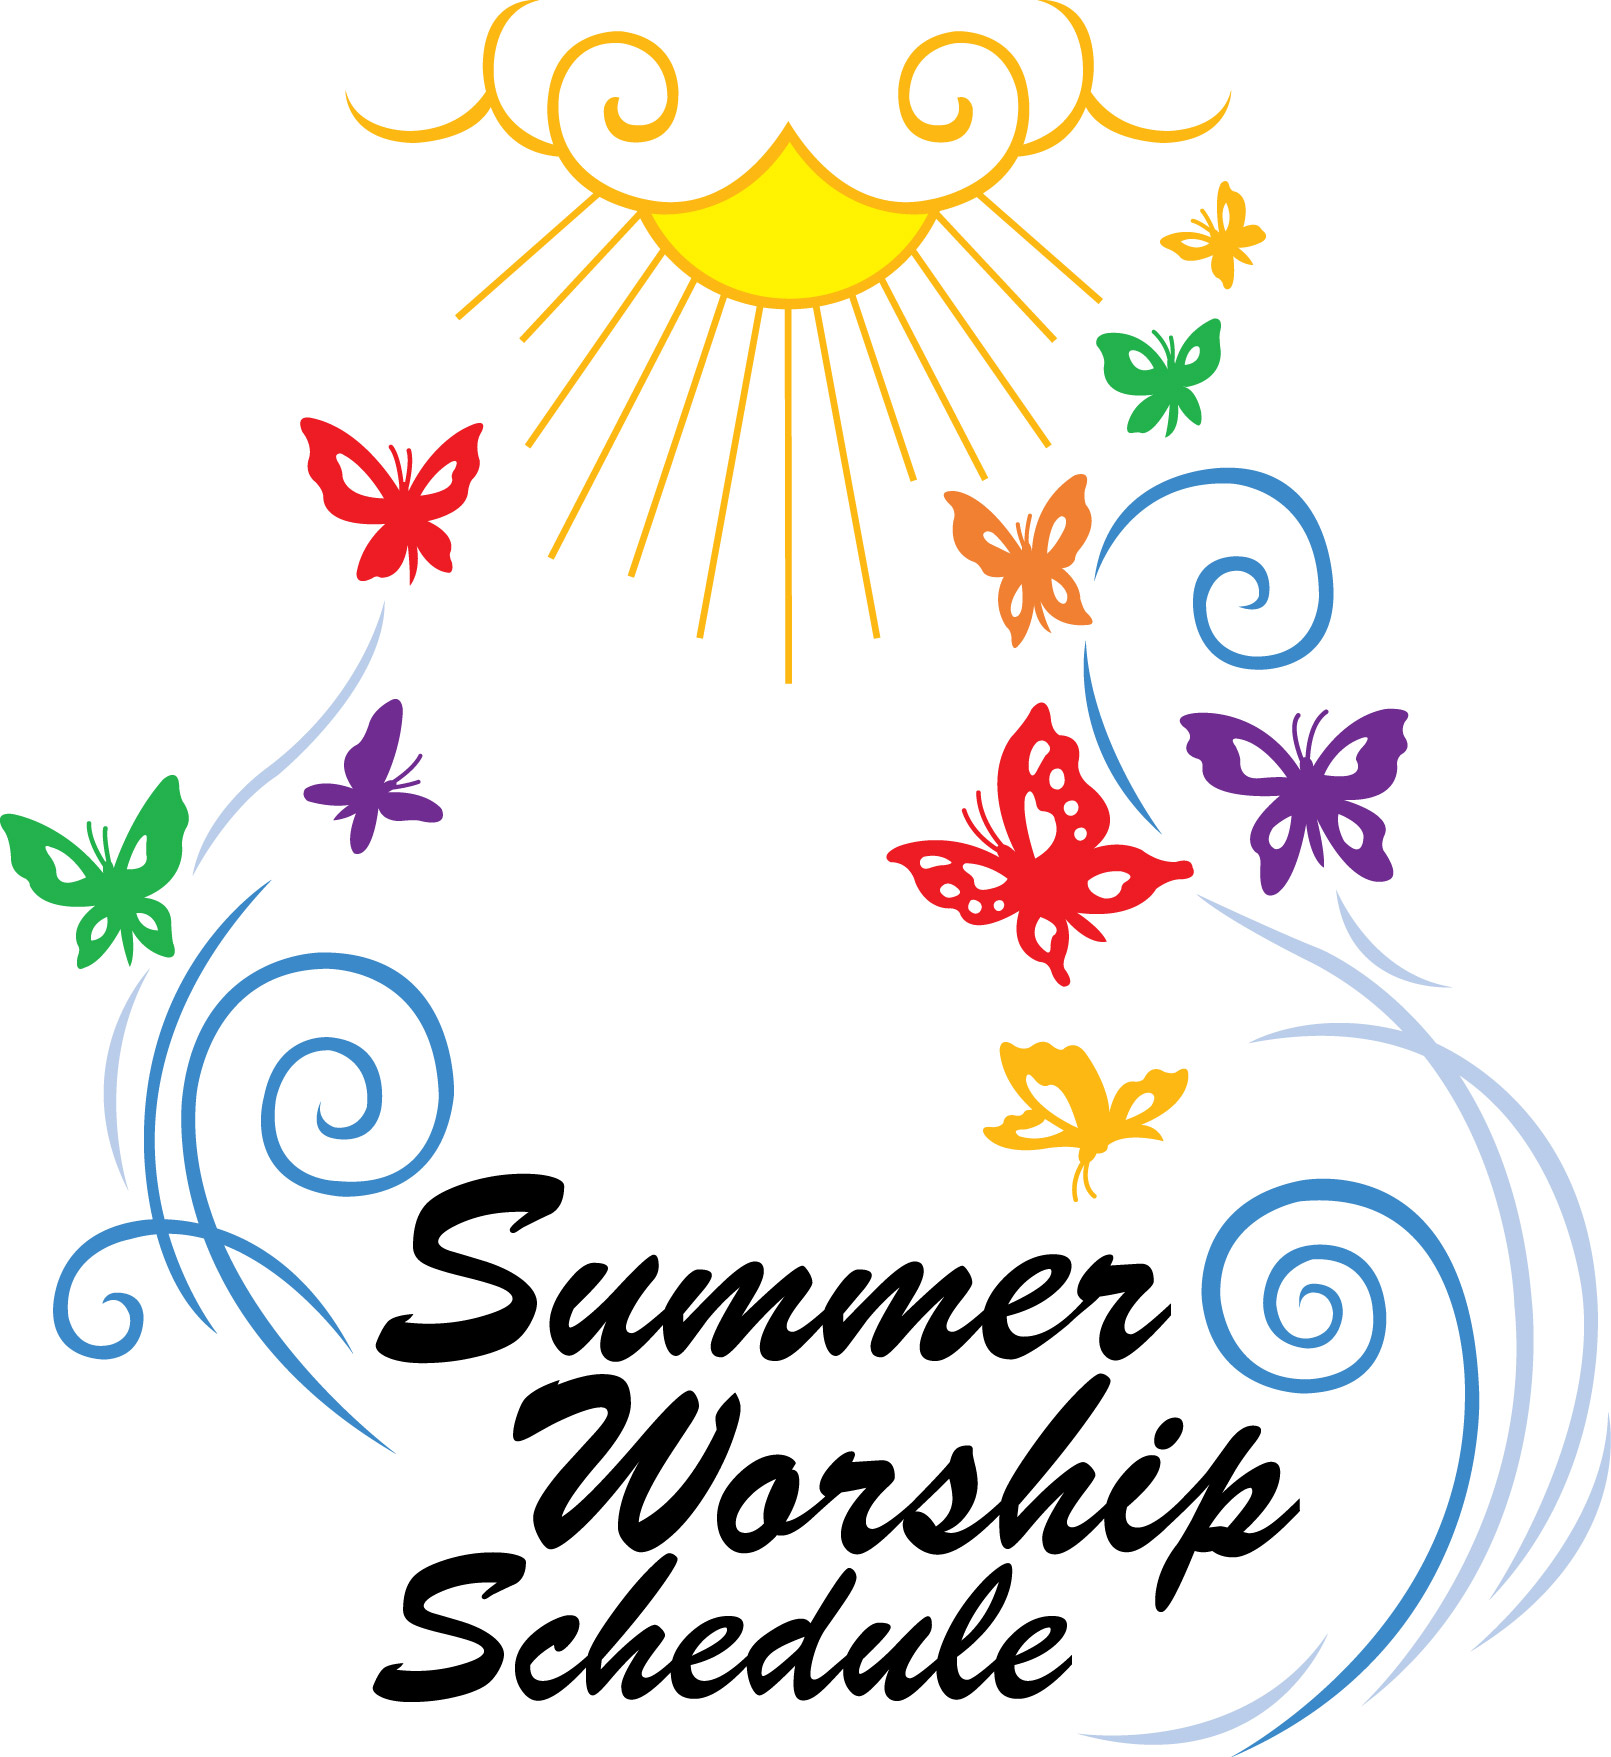 Free Worship Schedule Cliparts, Download Free Clip Art, Free.